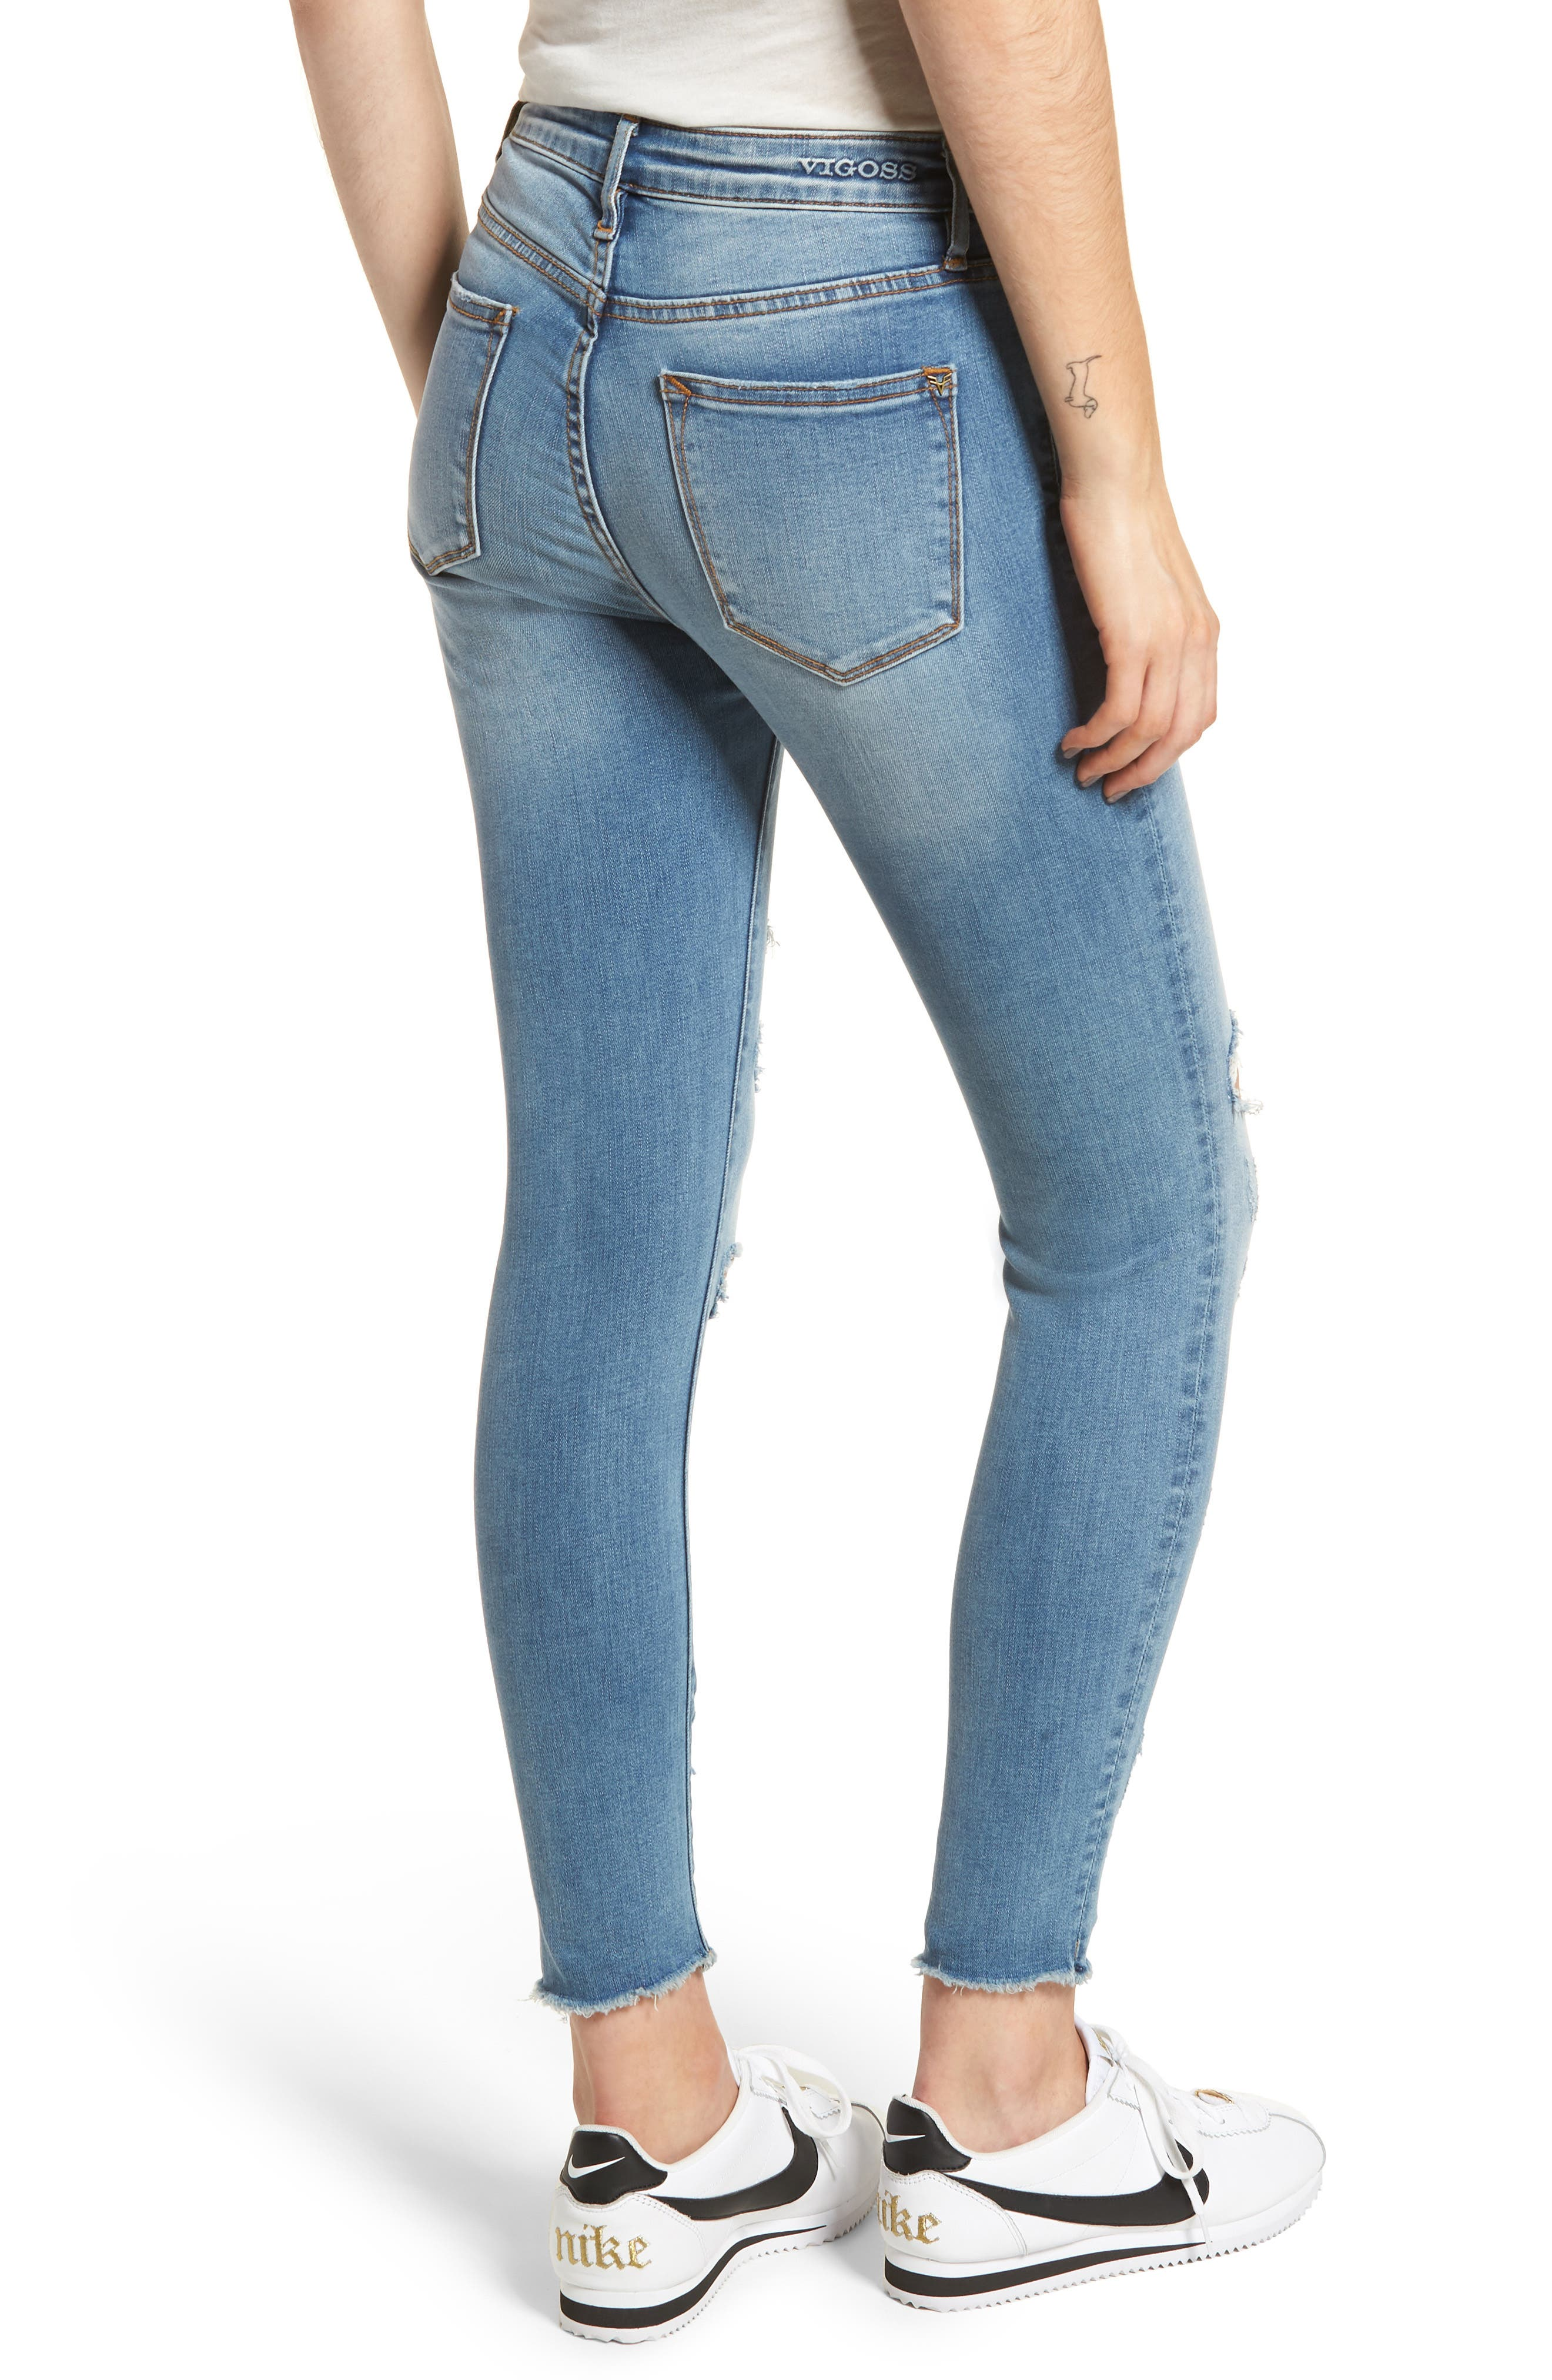 Marley Distressed Skinny Jeans,                             Alternate thumbnail 2, color,                             Medium Wash